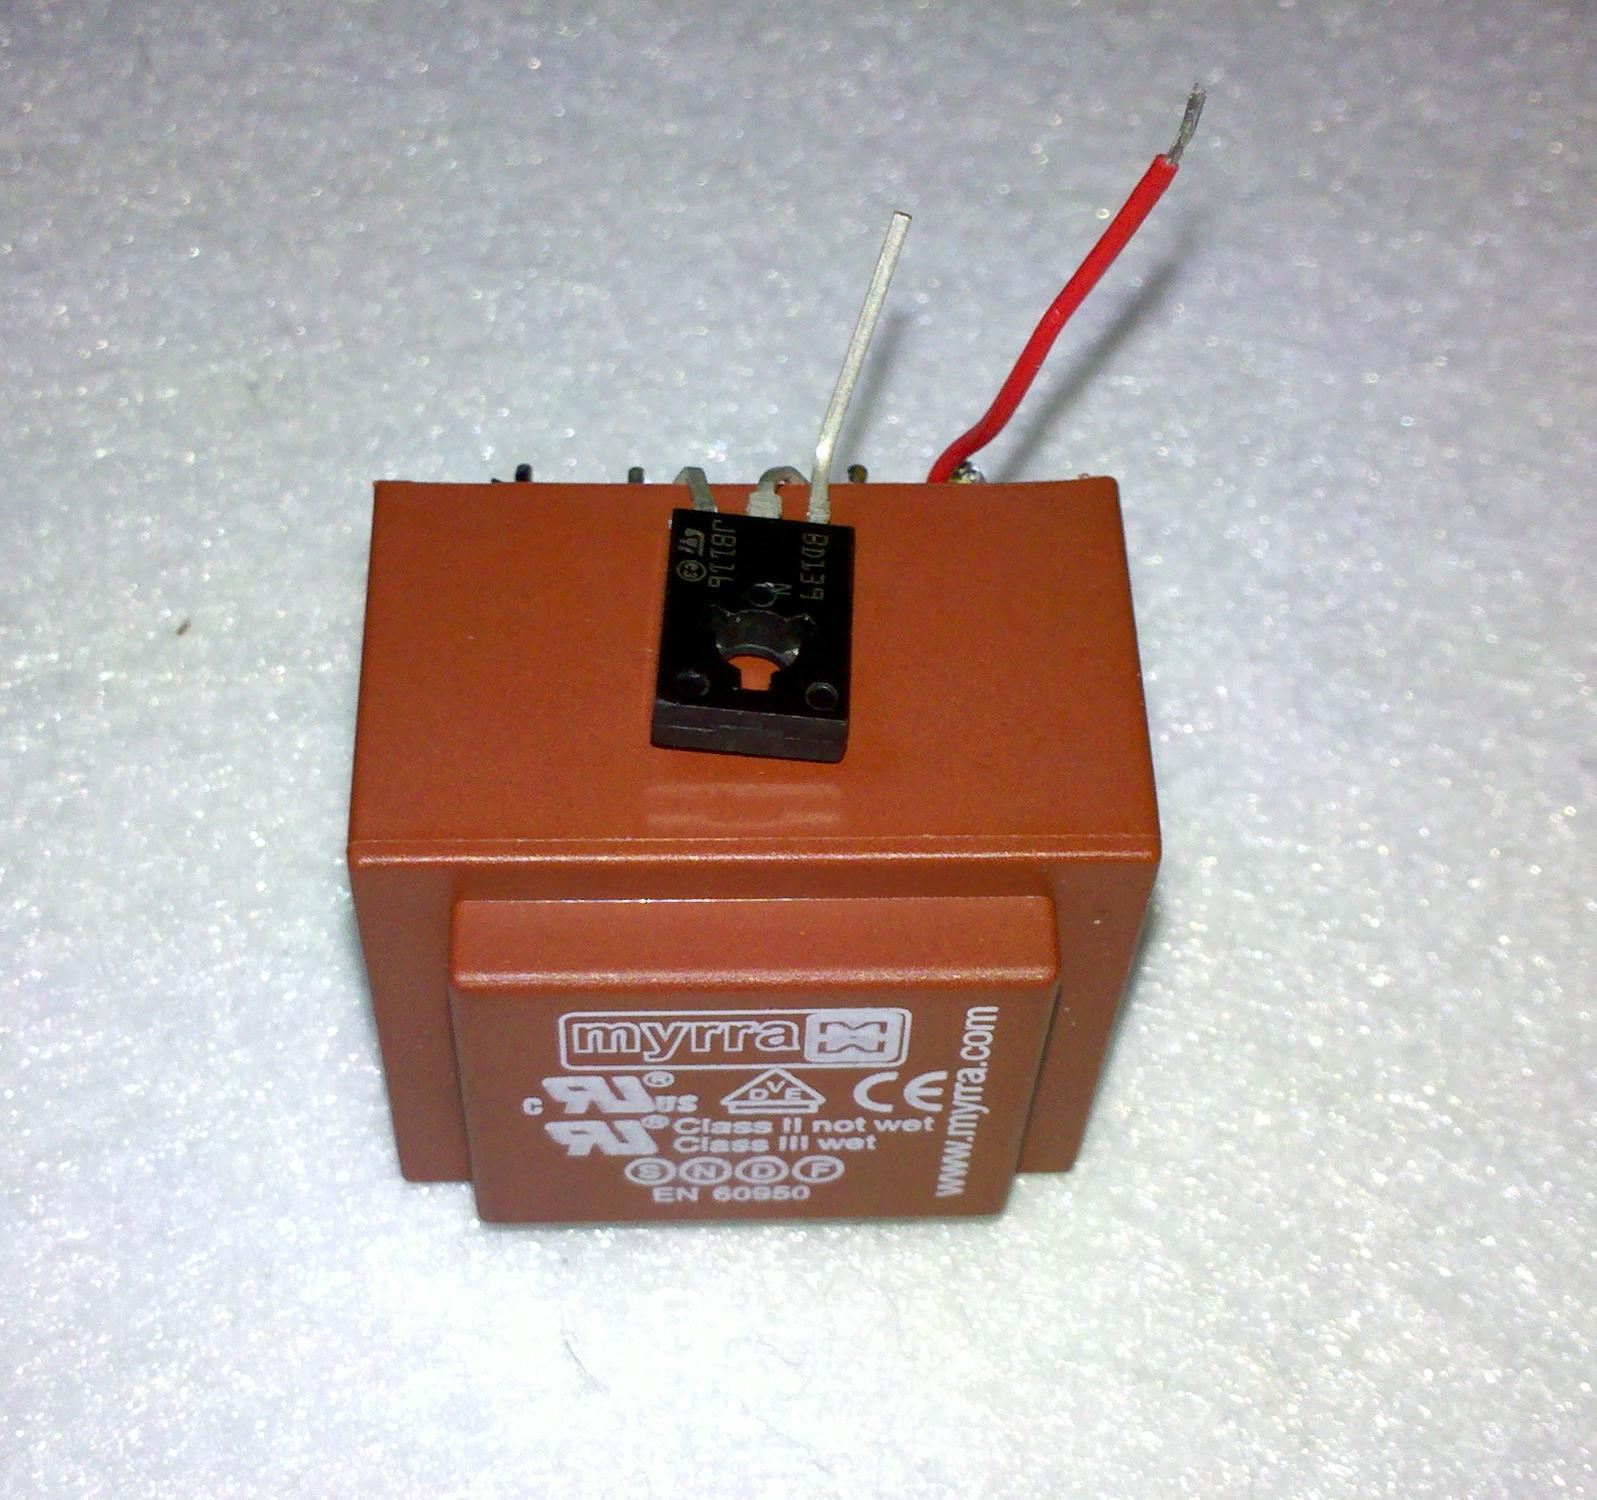 Do it yourself gadgets simple 2000 volts transformer do it yourself gadgets simple 2000 volts transformer electrostatic sticky notes solutioingenieria Images